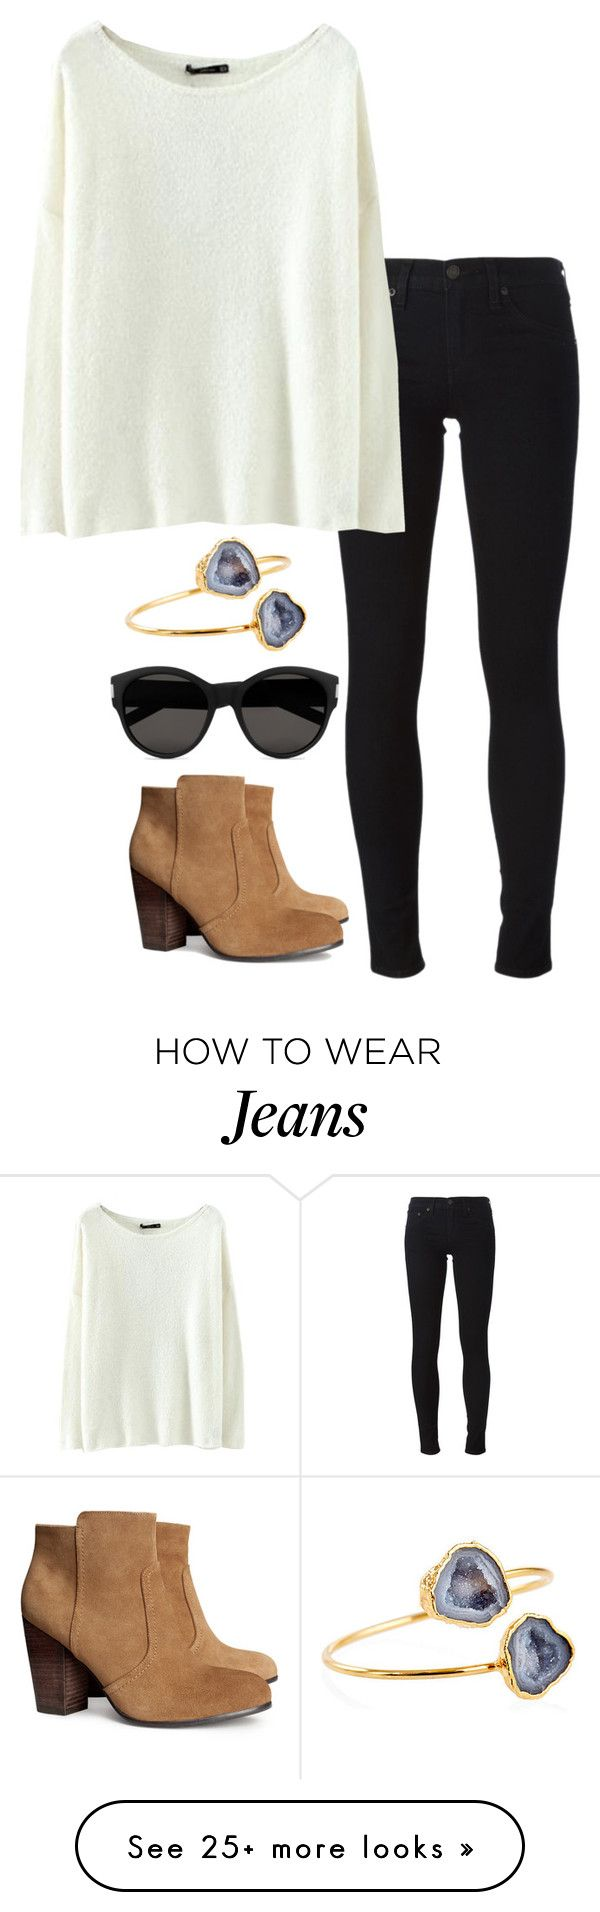 quot black jeans quot  by helenhudson1 on Polyvore featuring H amp M  Janna Conner  Yves Saint Laurent and rag  amp  bone JEAN